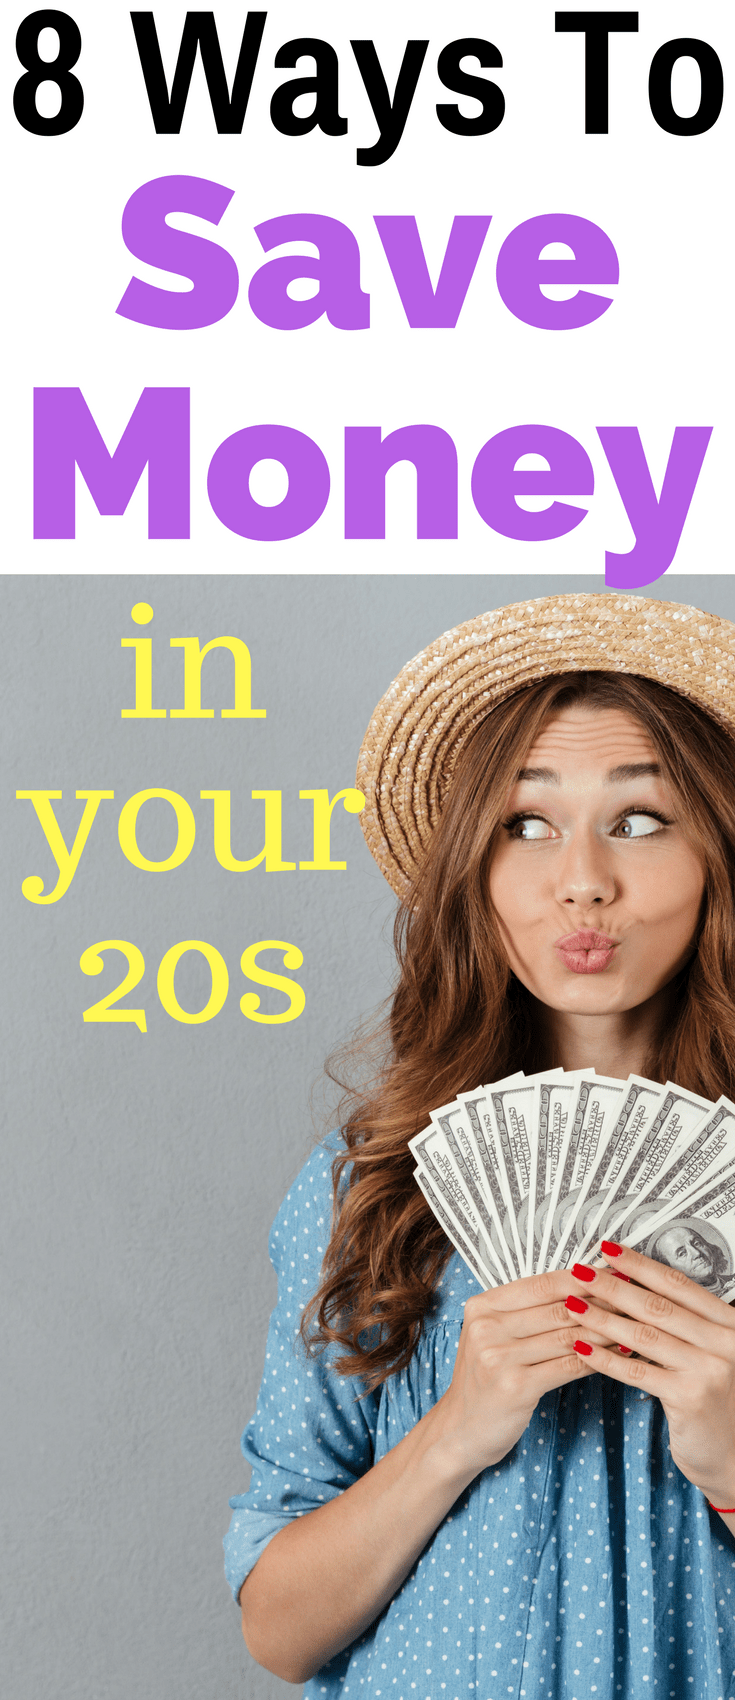 8 Ways To Save Money In Your 20s